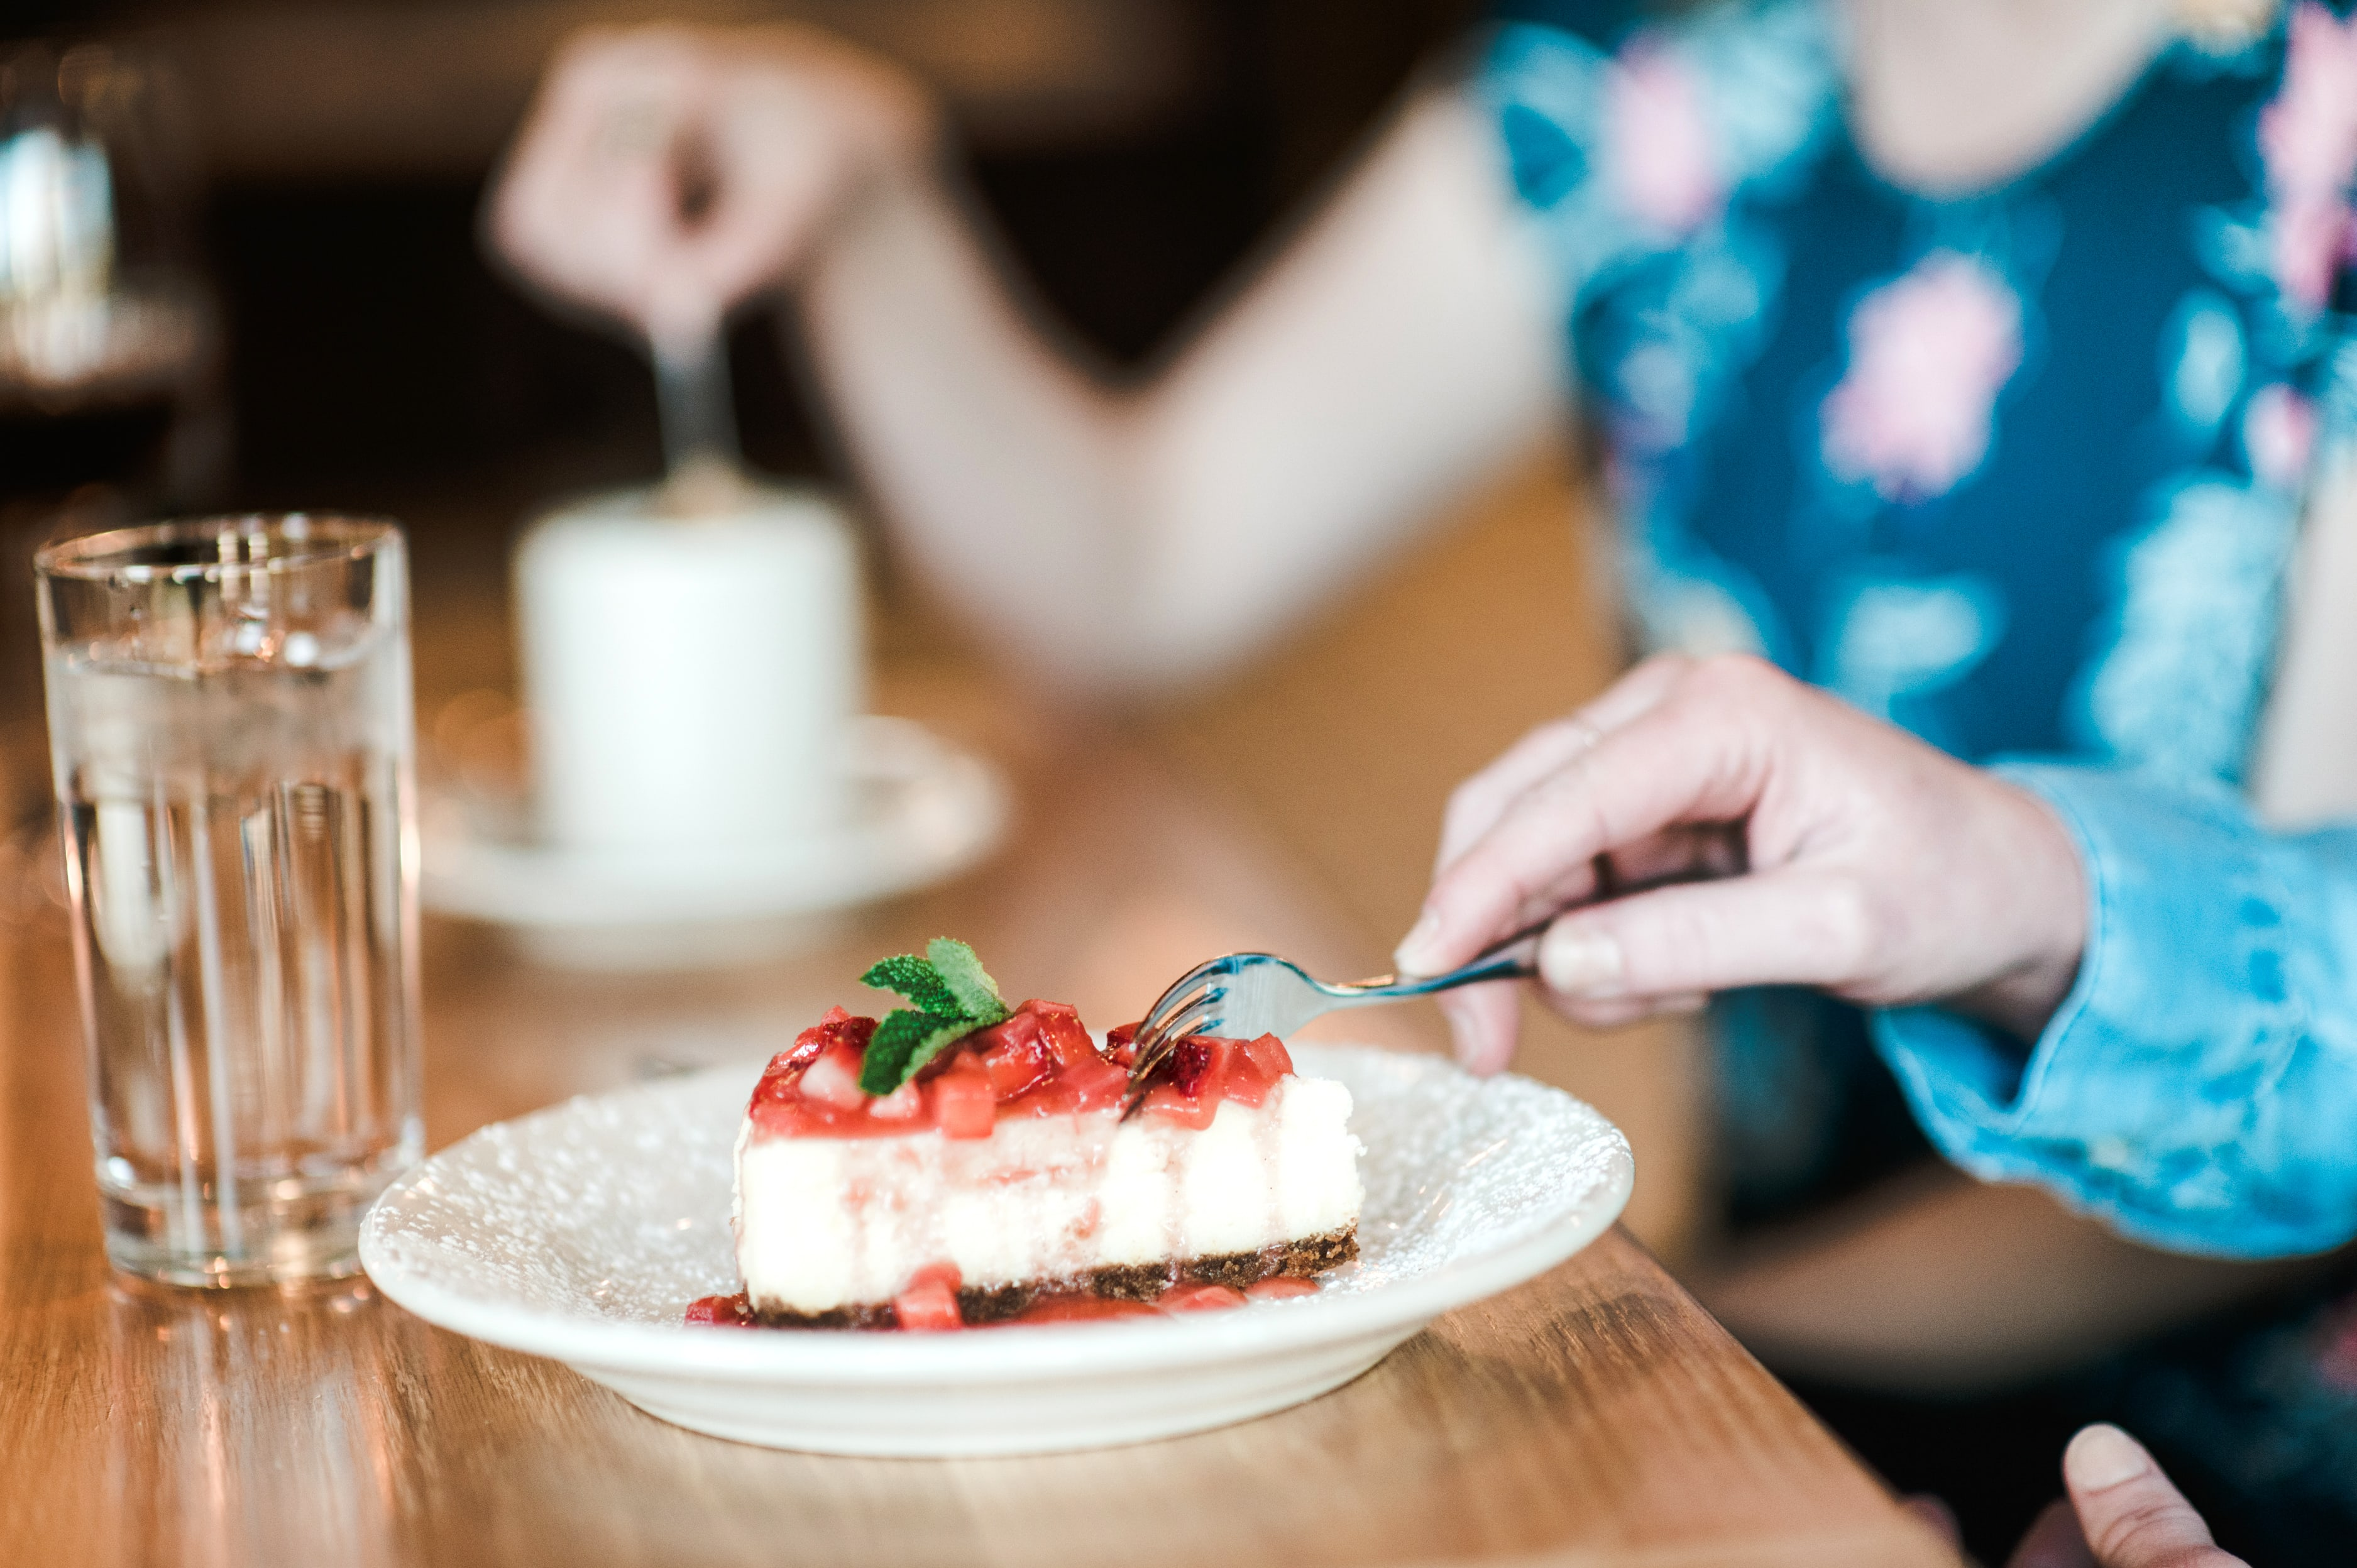 Couple eating piece of cake